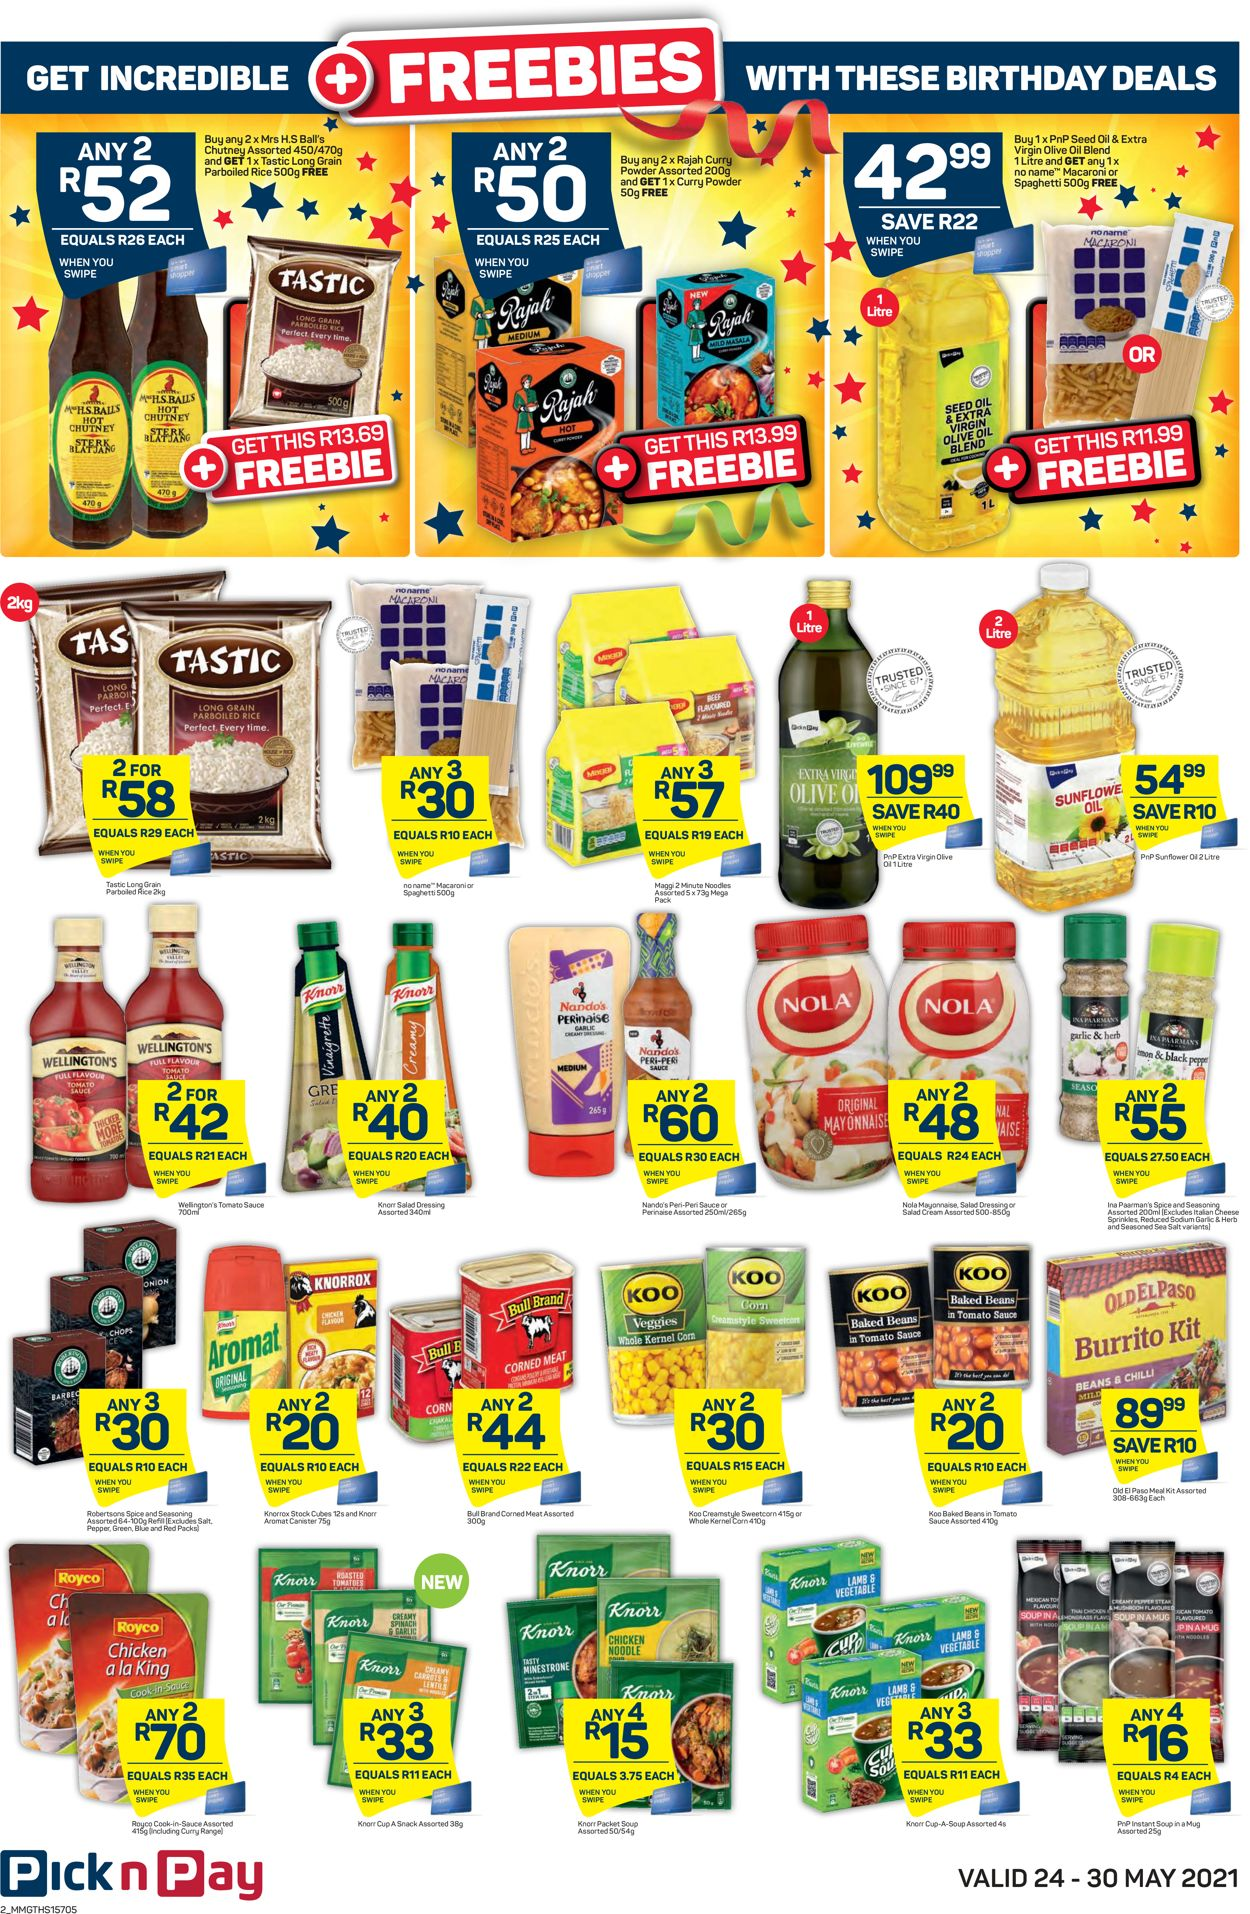 Pick n Pay Catalogue - 2021/05/24-2021/05/30 (Page 2)